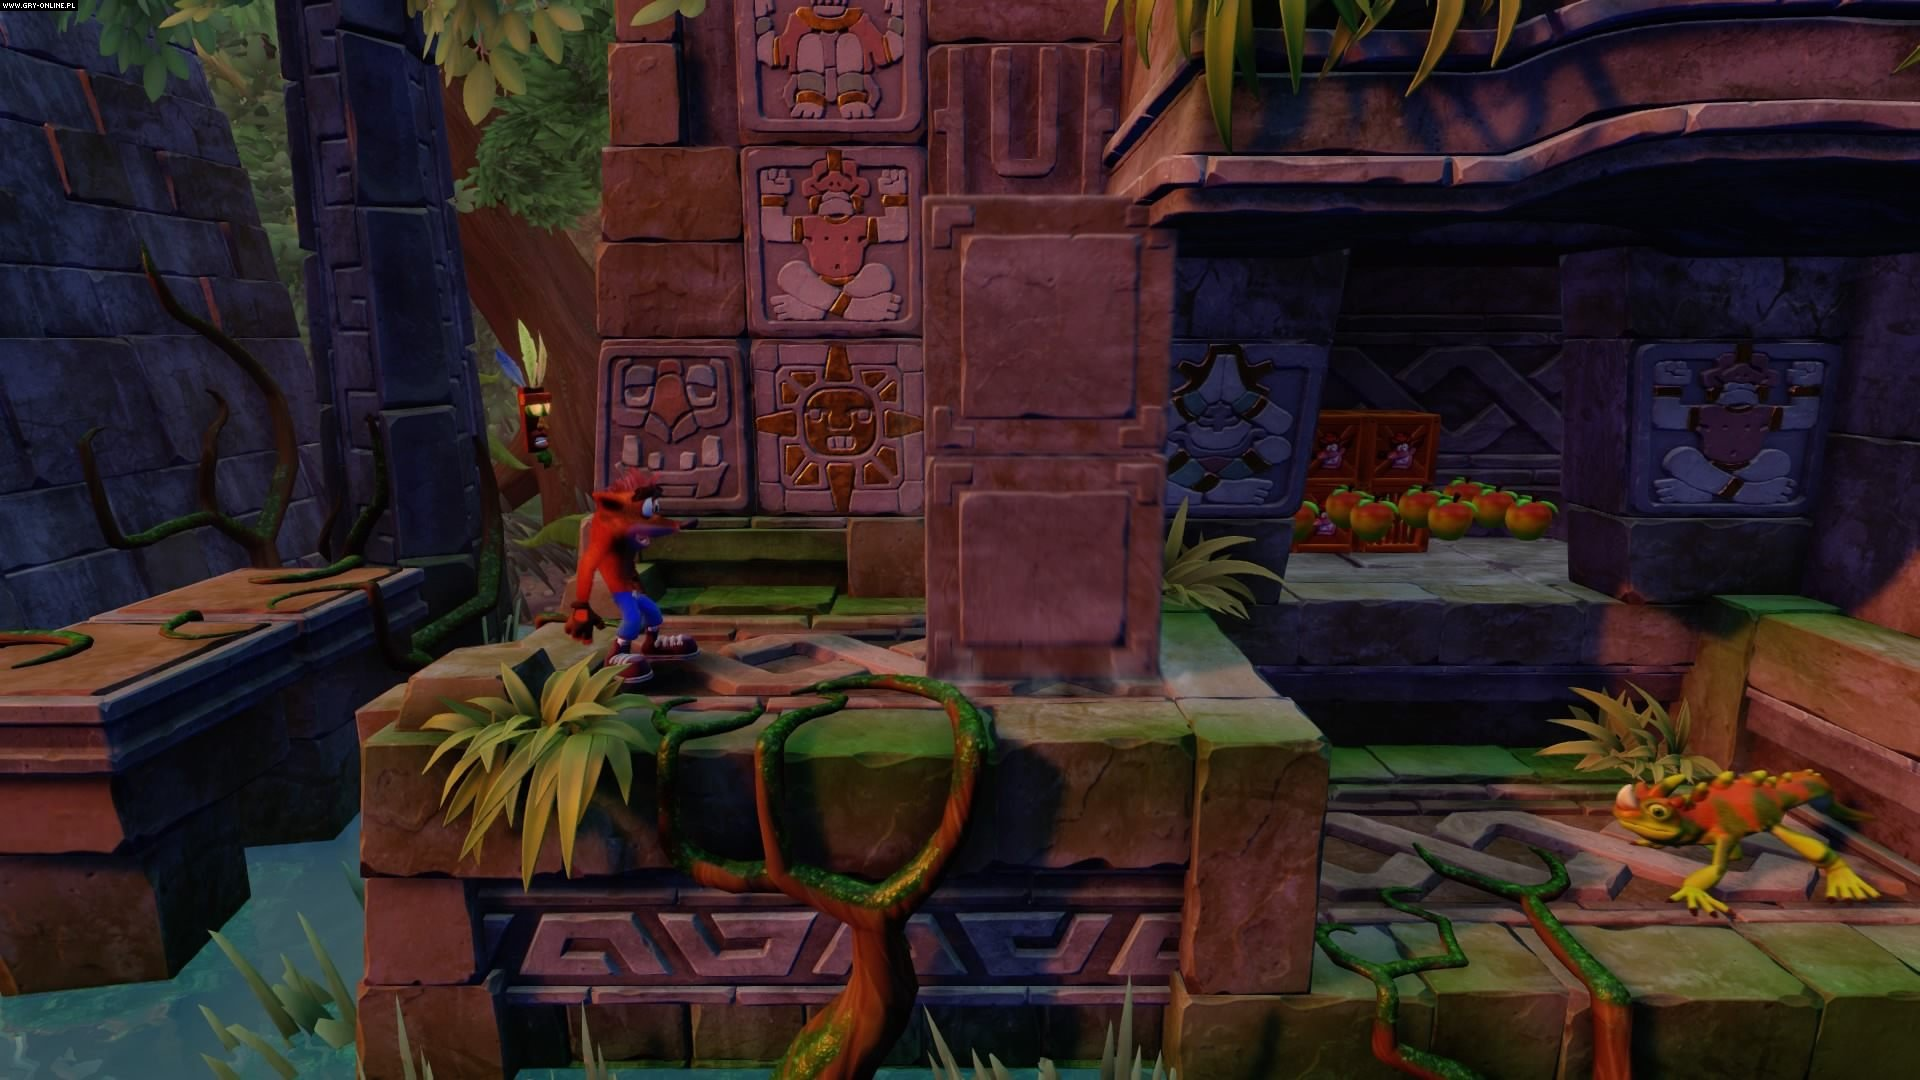 Crash Bandicoot N. Sane Trilogy PC, PS4, XONE, Switch Gry Screen 43/115, Vicarious Visions, Activision Blizzard